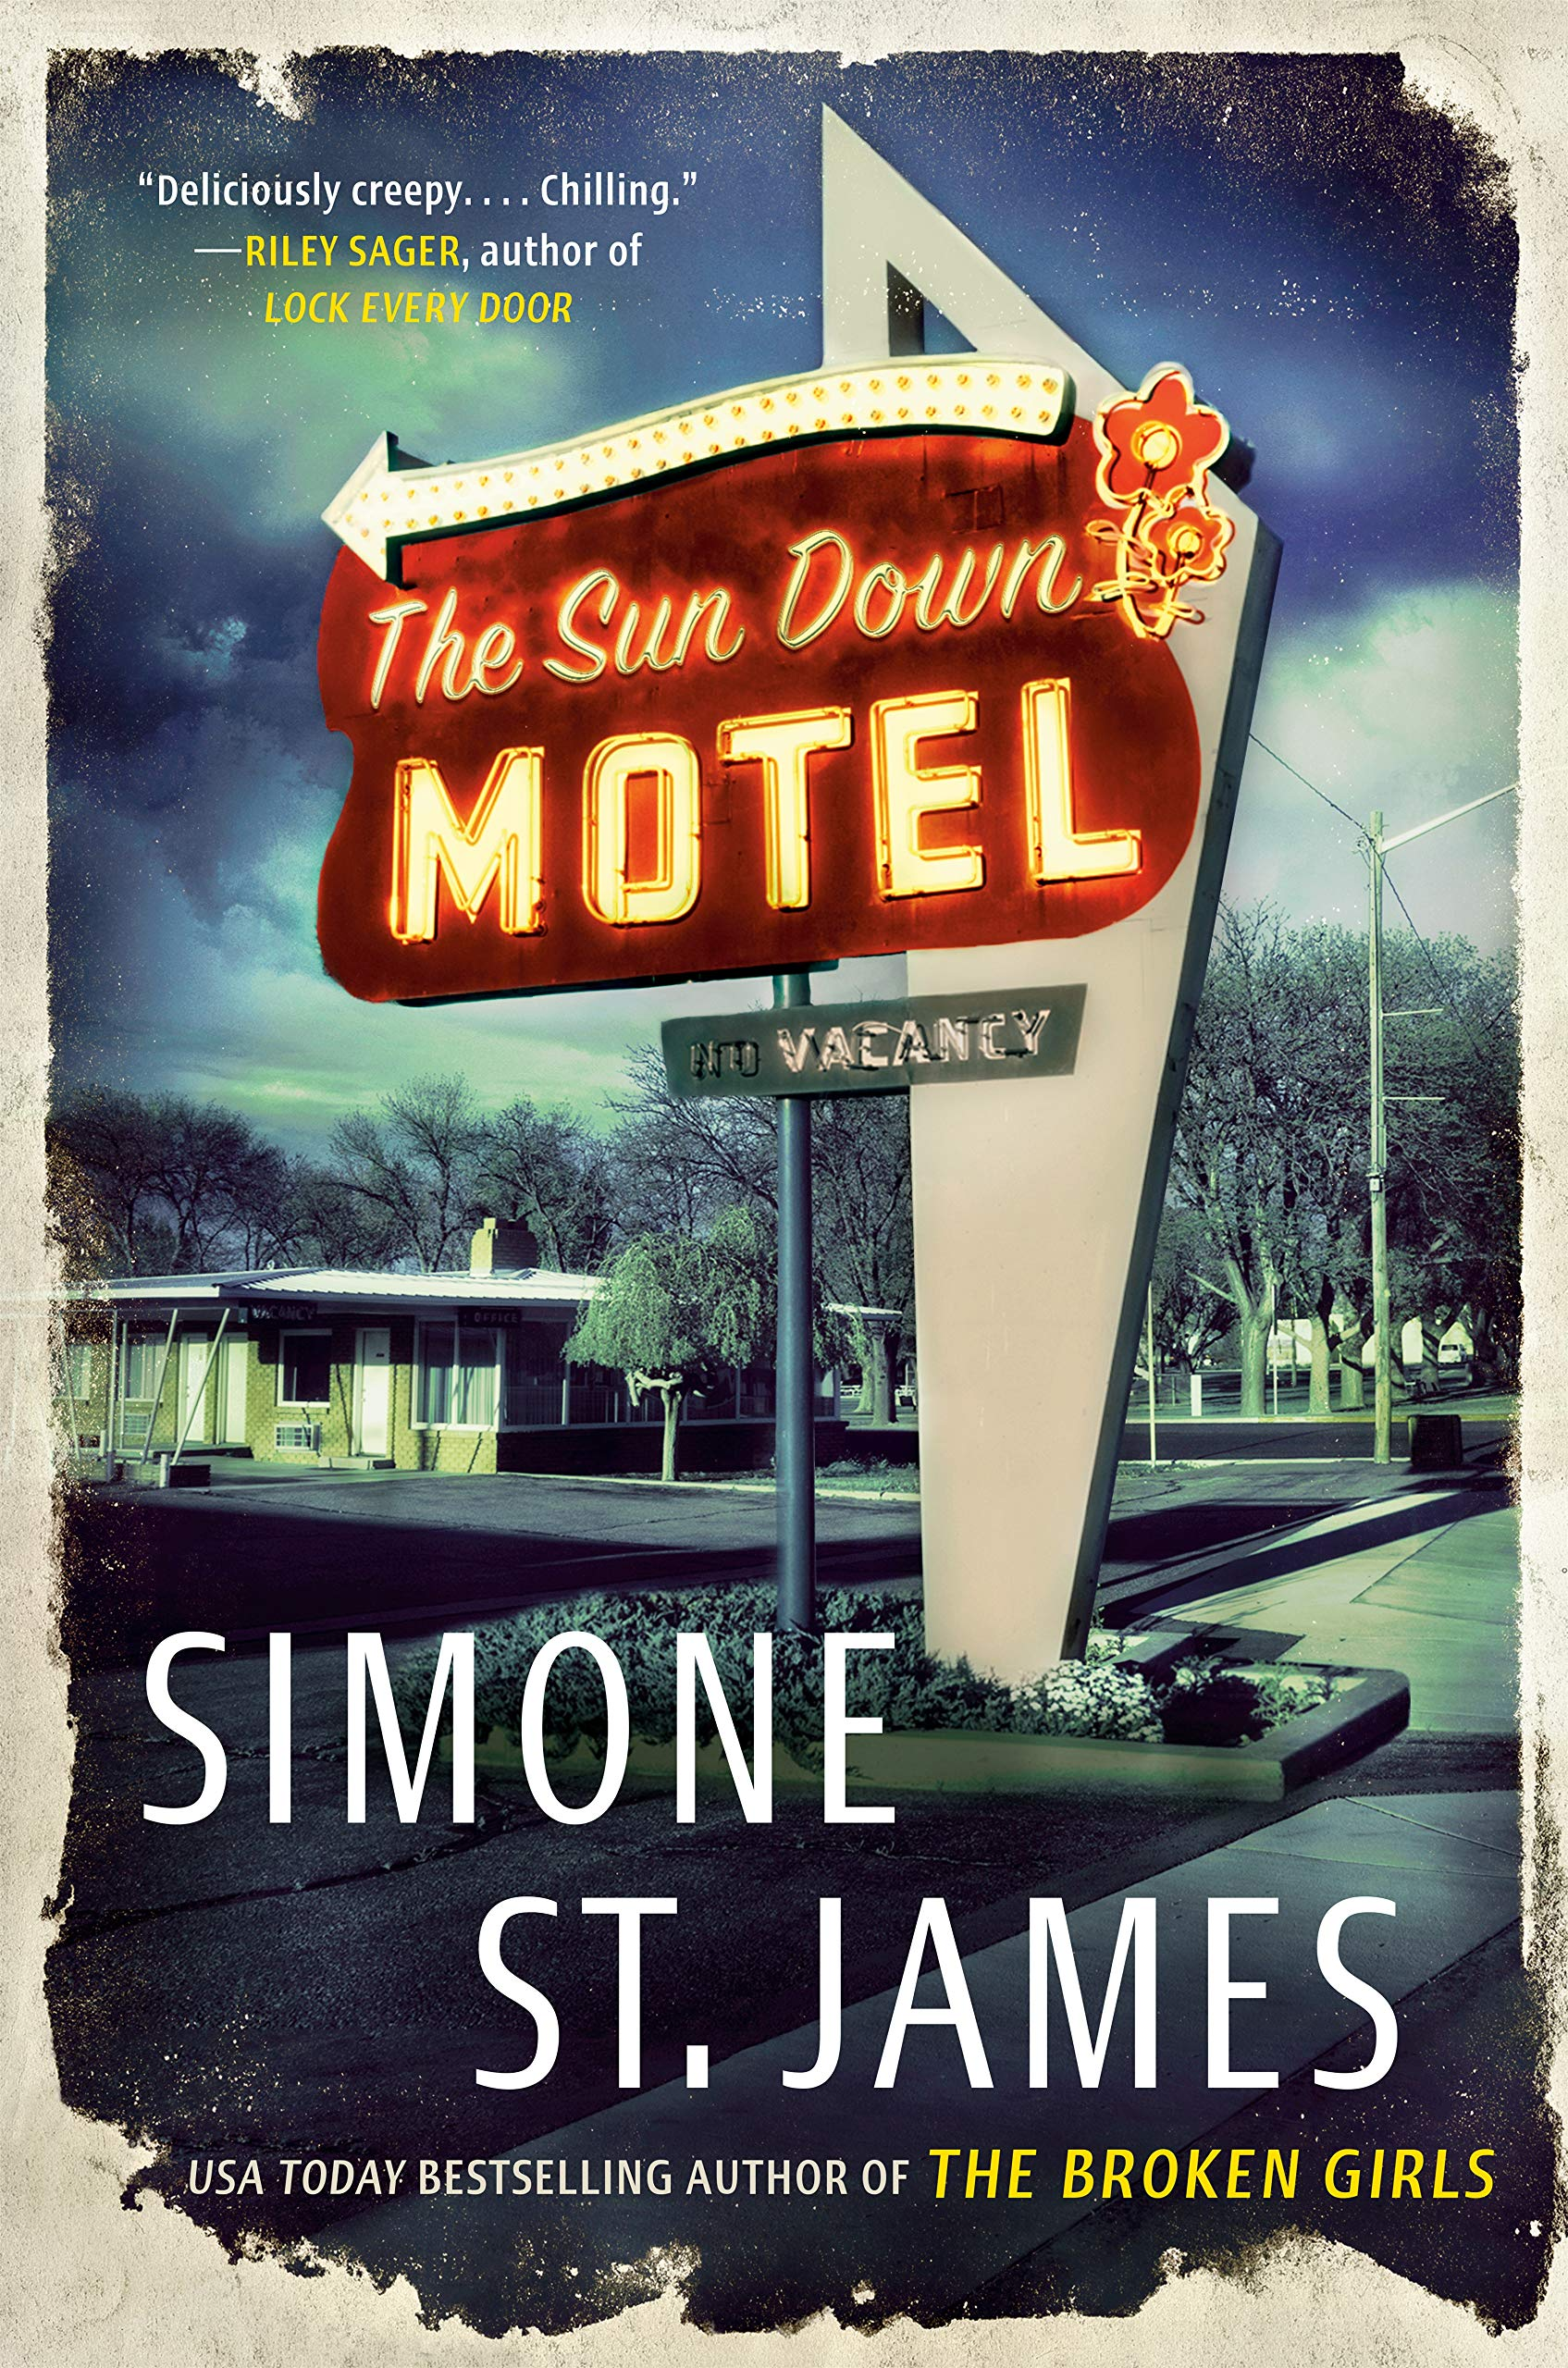 Amazon.com: The Sun Down Motel (9780440000174): St. James, Simone ...